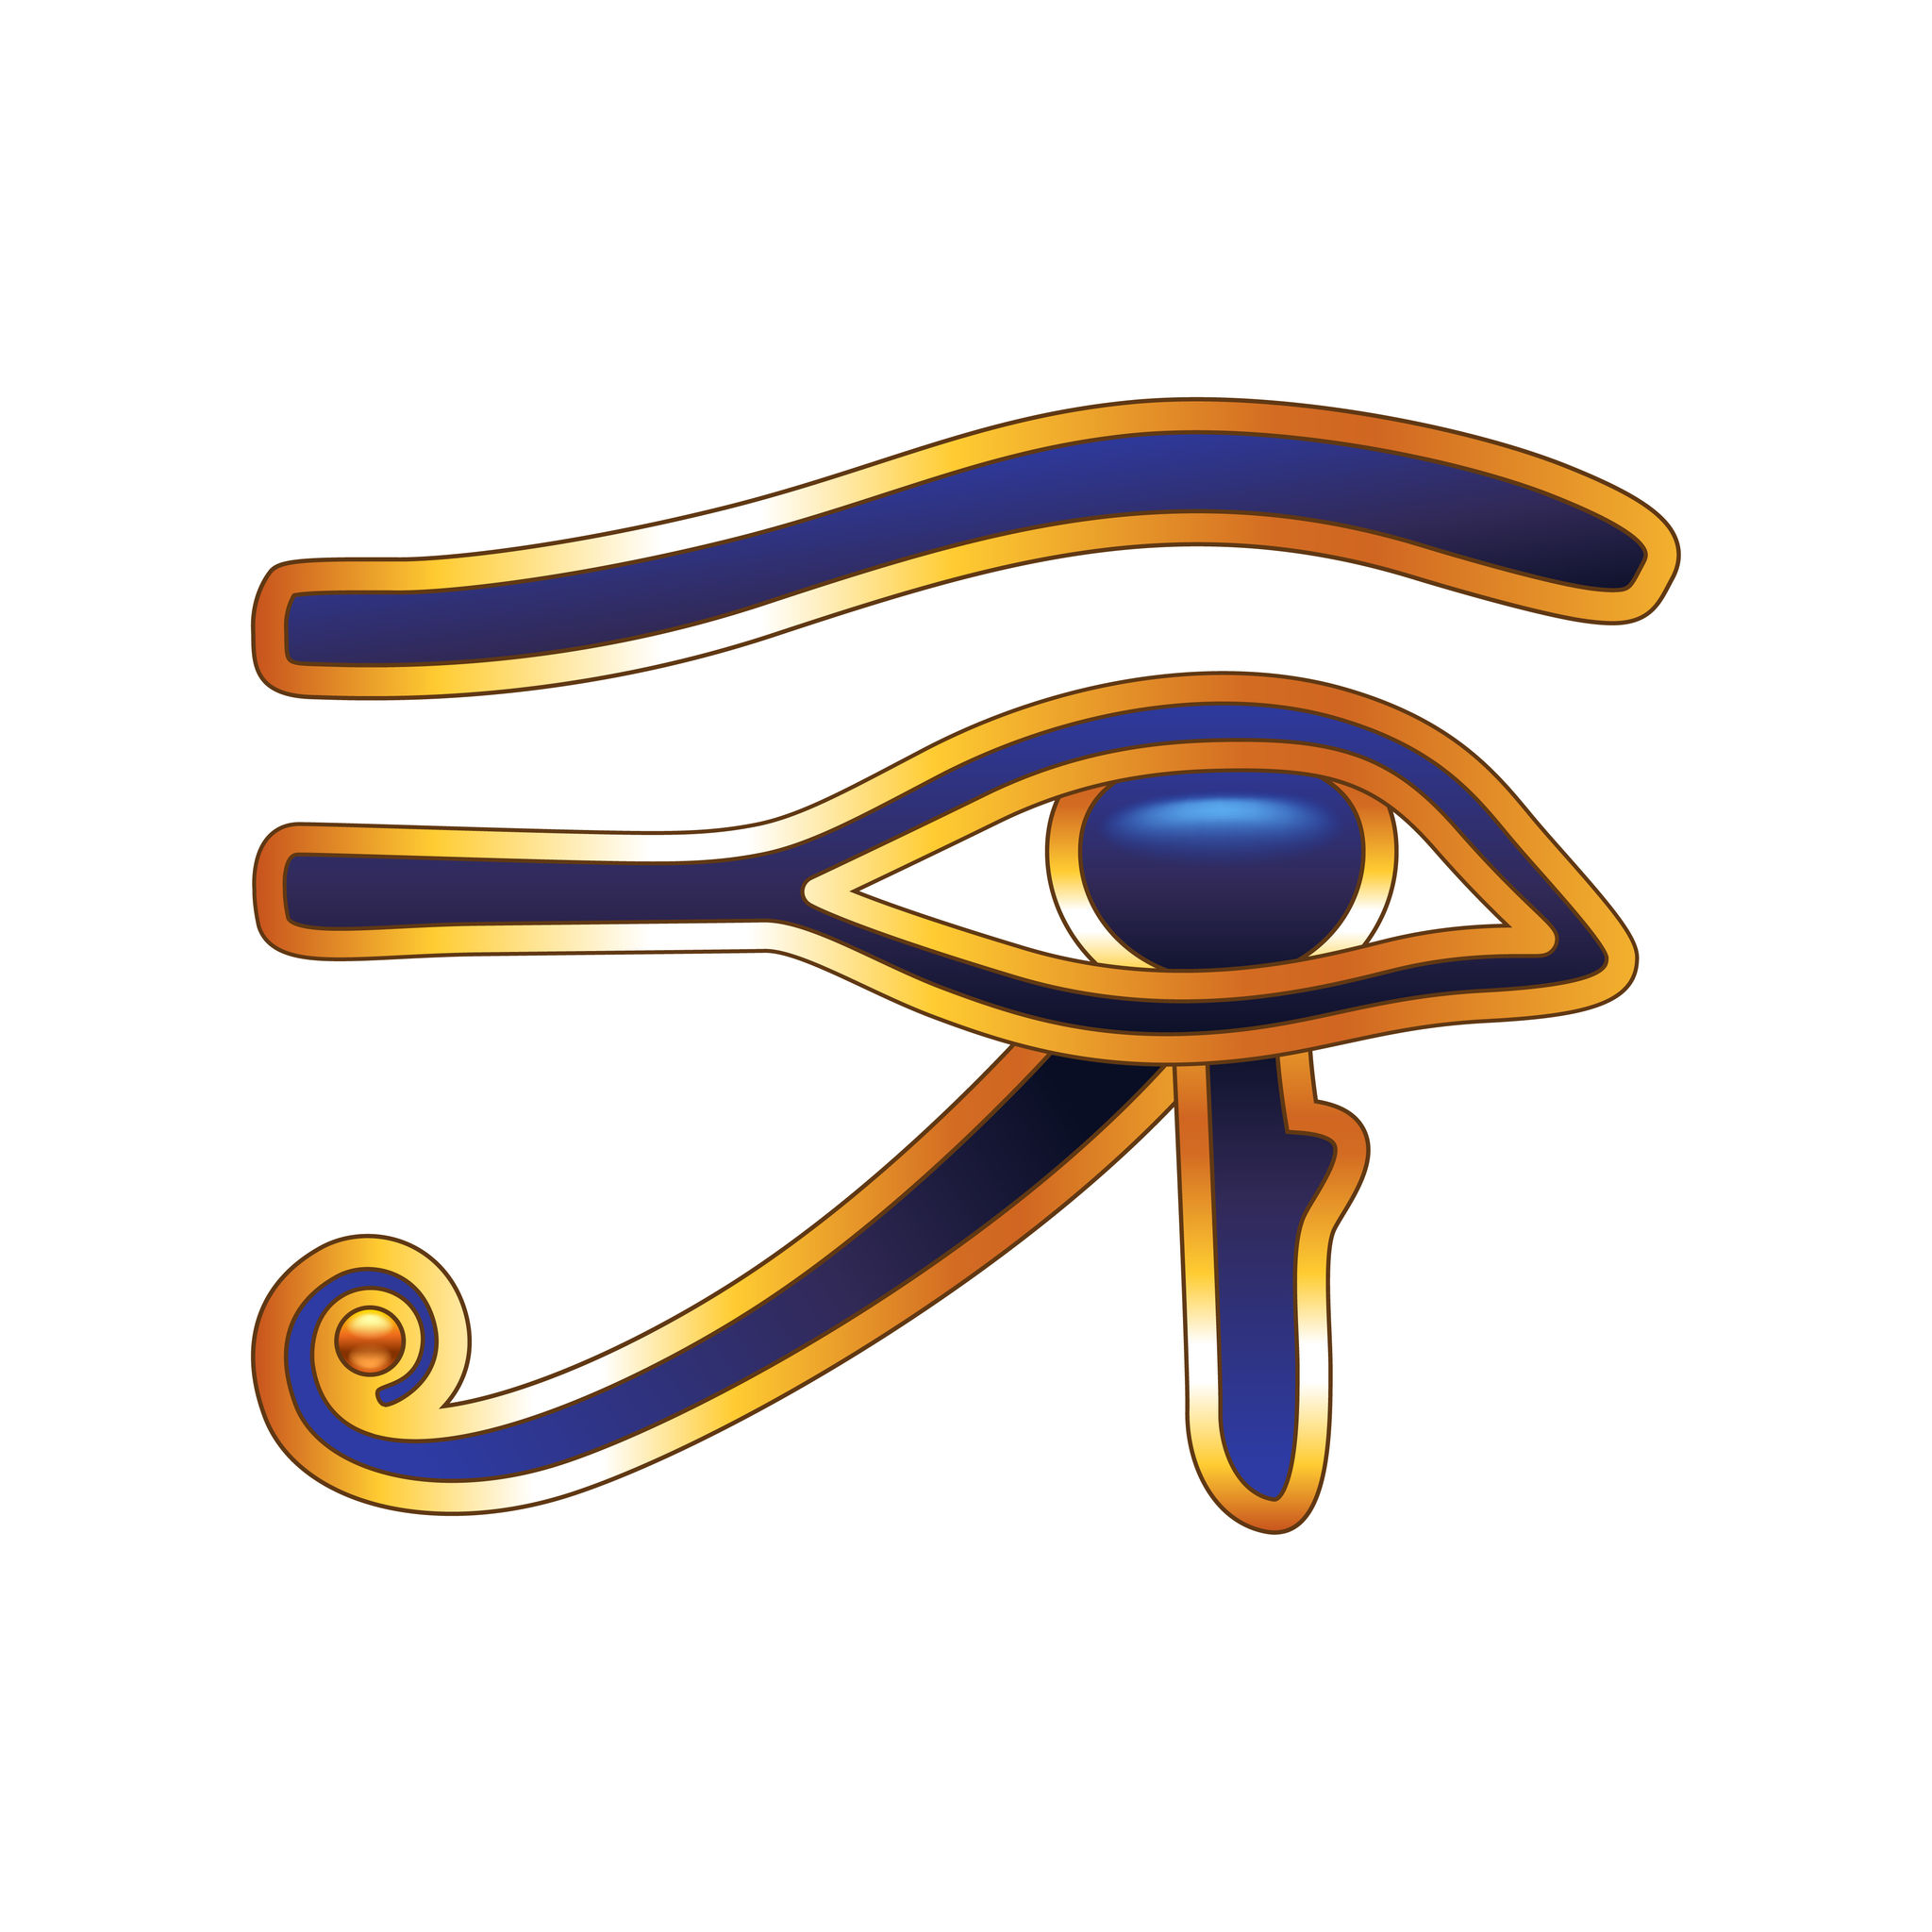 The Eye Of Horus Sacred Geometry Mysticism Ancient Wisdom